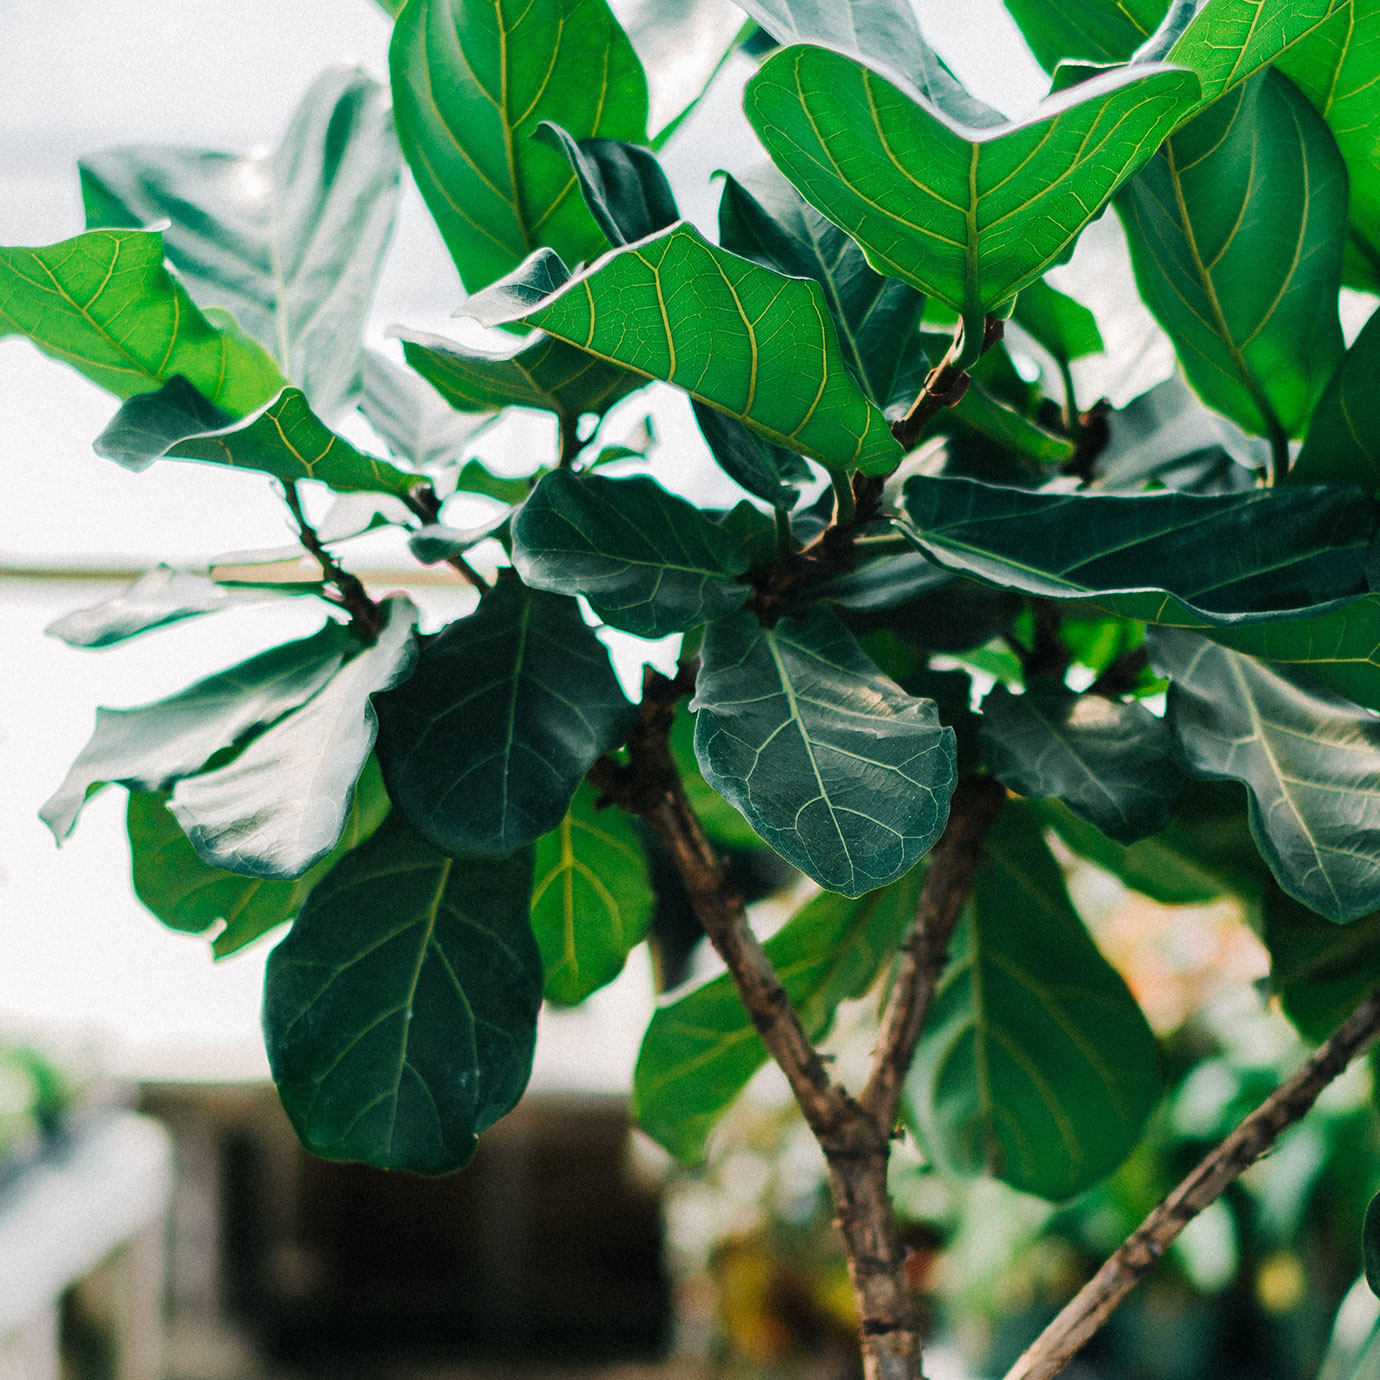 A small green leafed tree.